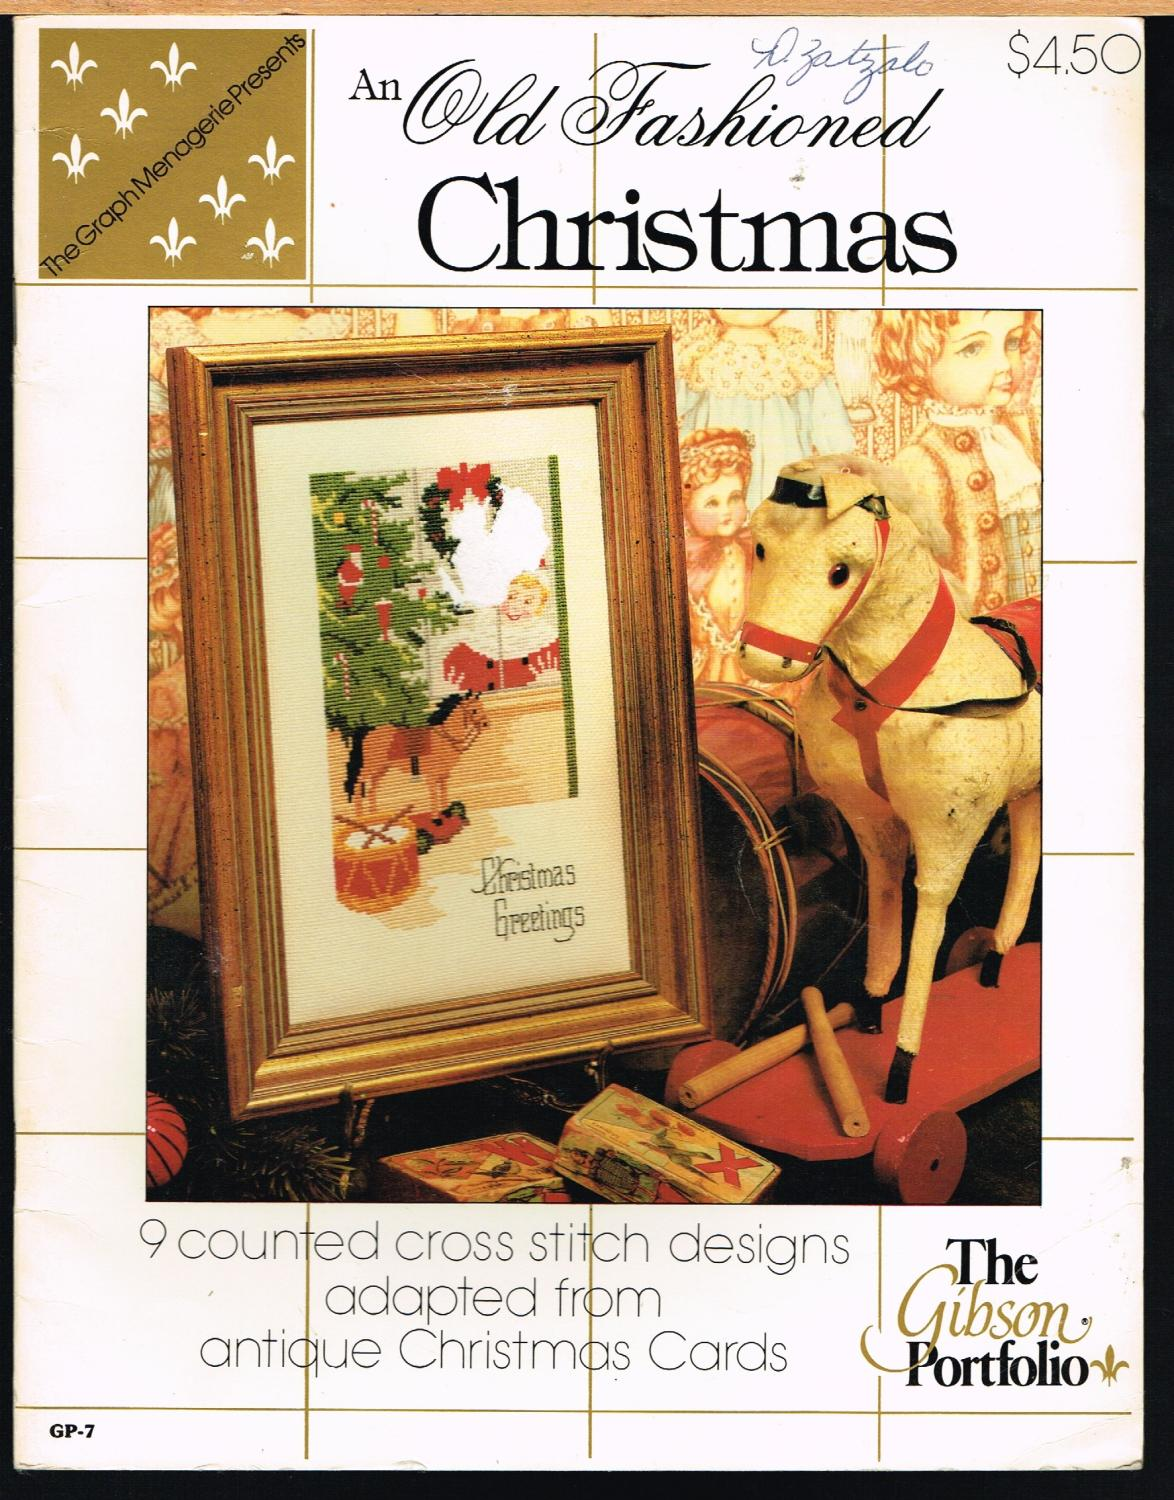 Old Fashioned Christmas Gp 7 9 Counted Cross Stitch Designs Adapted From Antique Christmas Cards By Gibson Portfolio Good Soft Cover 1983 Printing Not Stated Caroline Leone Bookservices